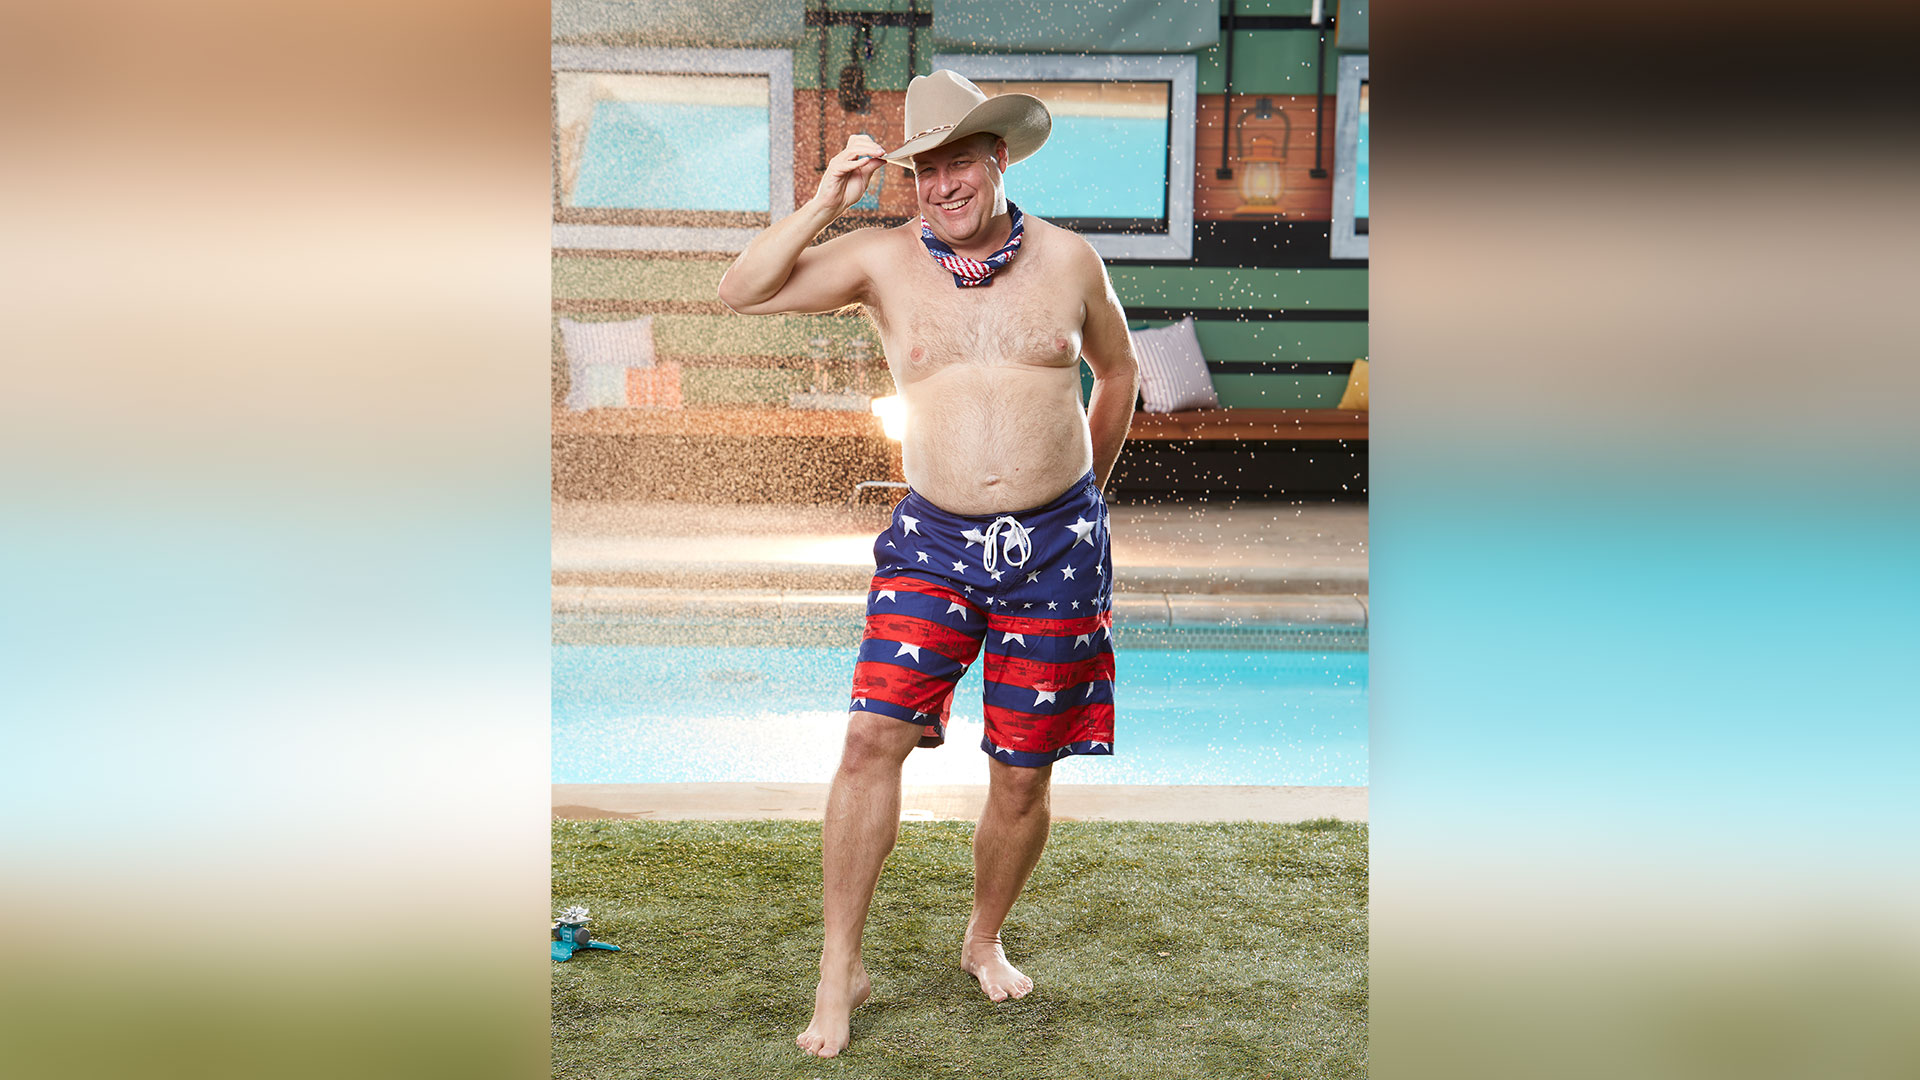 Cliff Hogg III shows us how the Texans lounge poolside with a cowboy hat and plenty of stars and stripes.